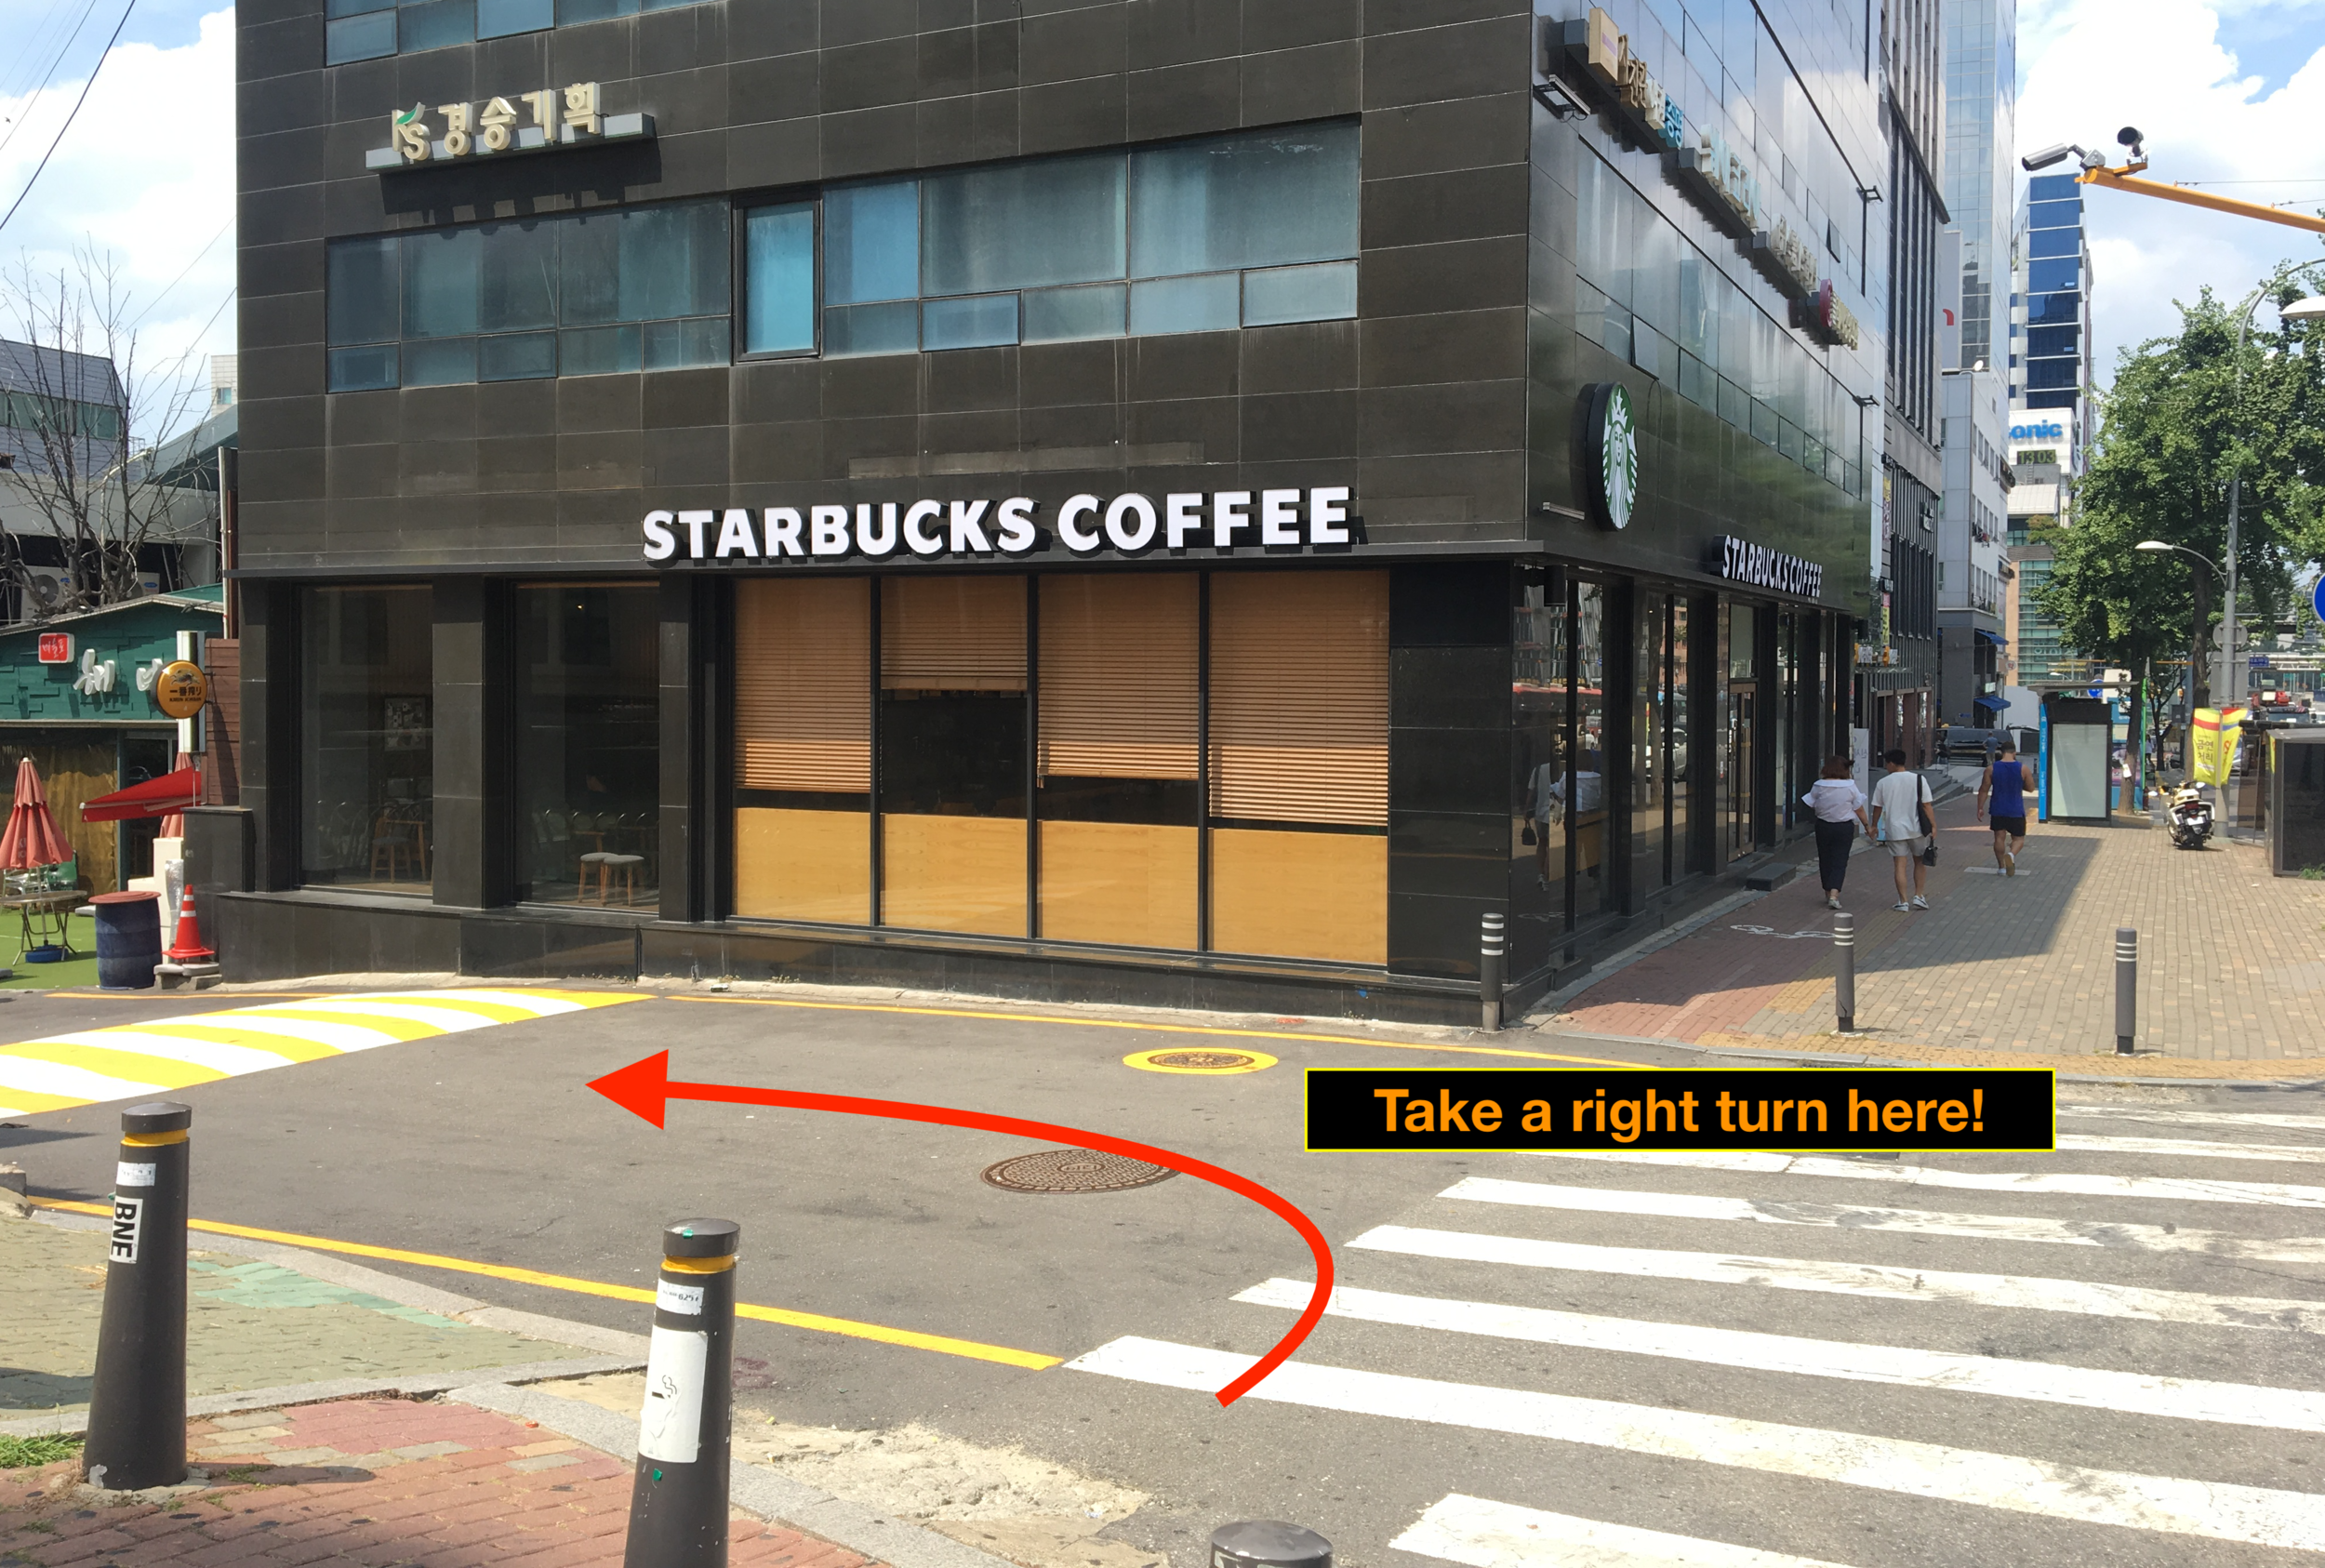 3. Walk down to starbucks and take a left turn. - When you see Starbucks, take a left turn towards holly's coffee for 30 seconds.